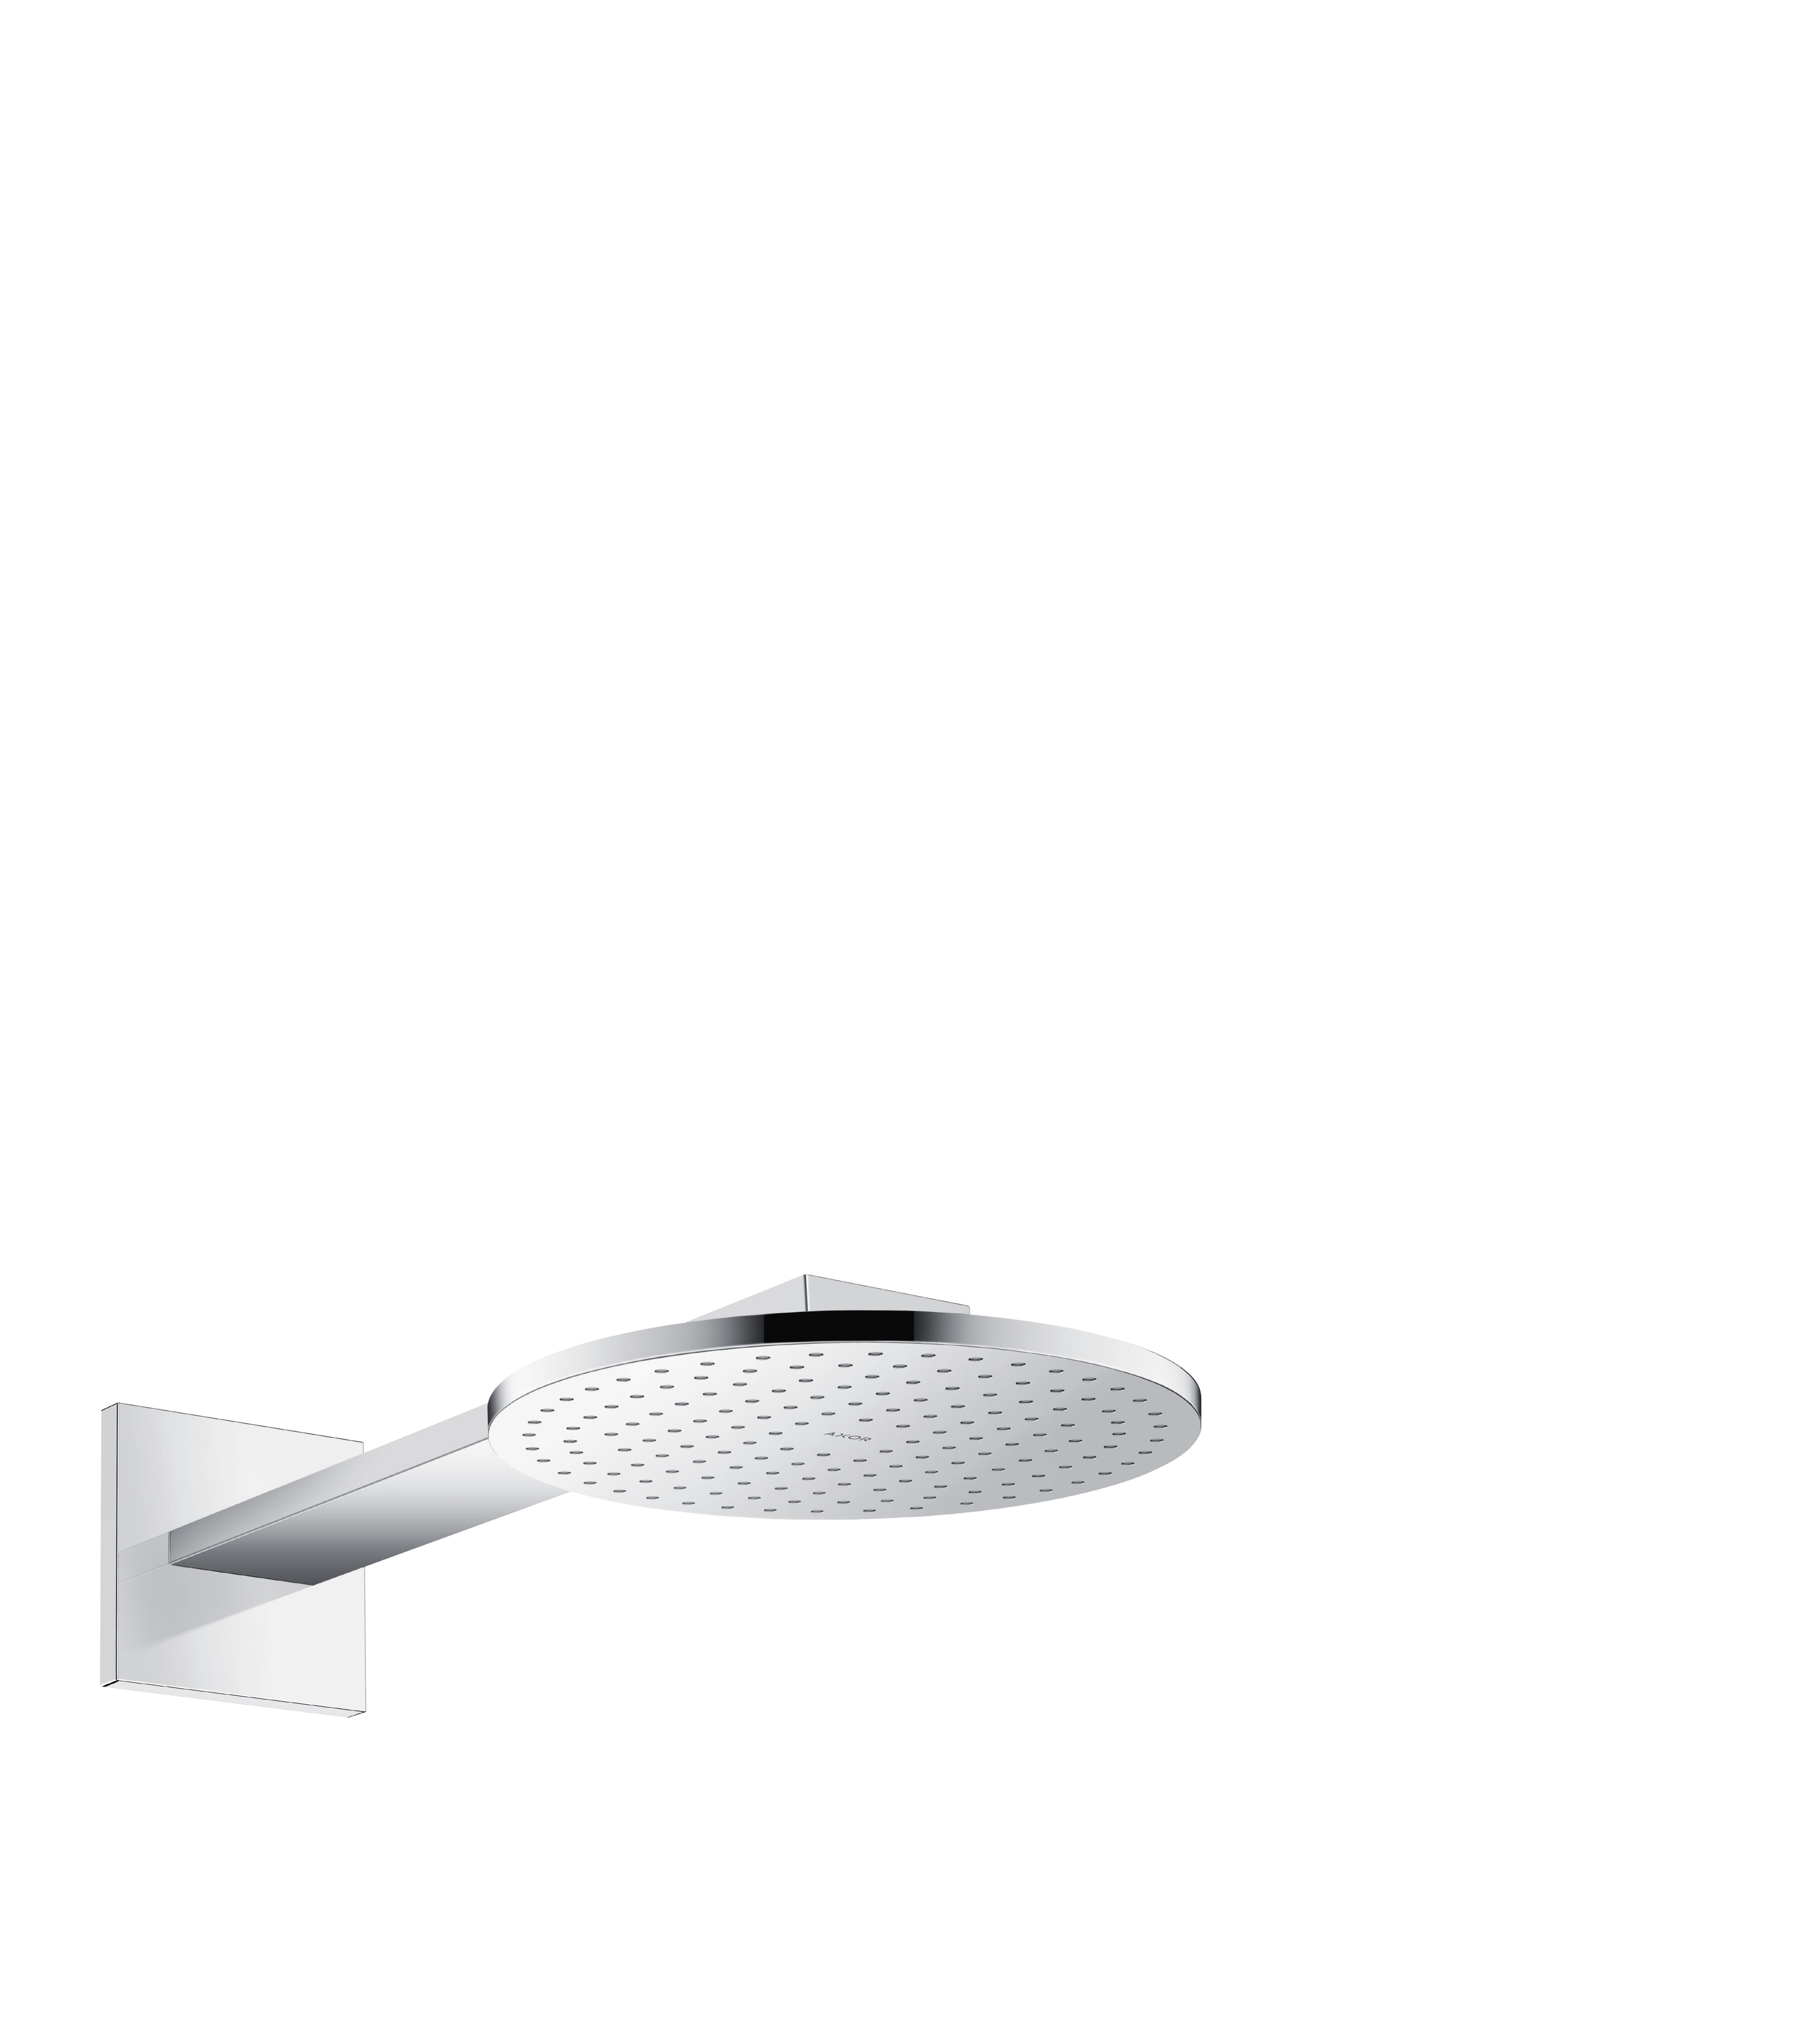 Details About Hansgrohe Shower Head 250 2jet Axor Chrome 35296000